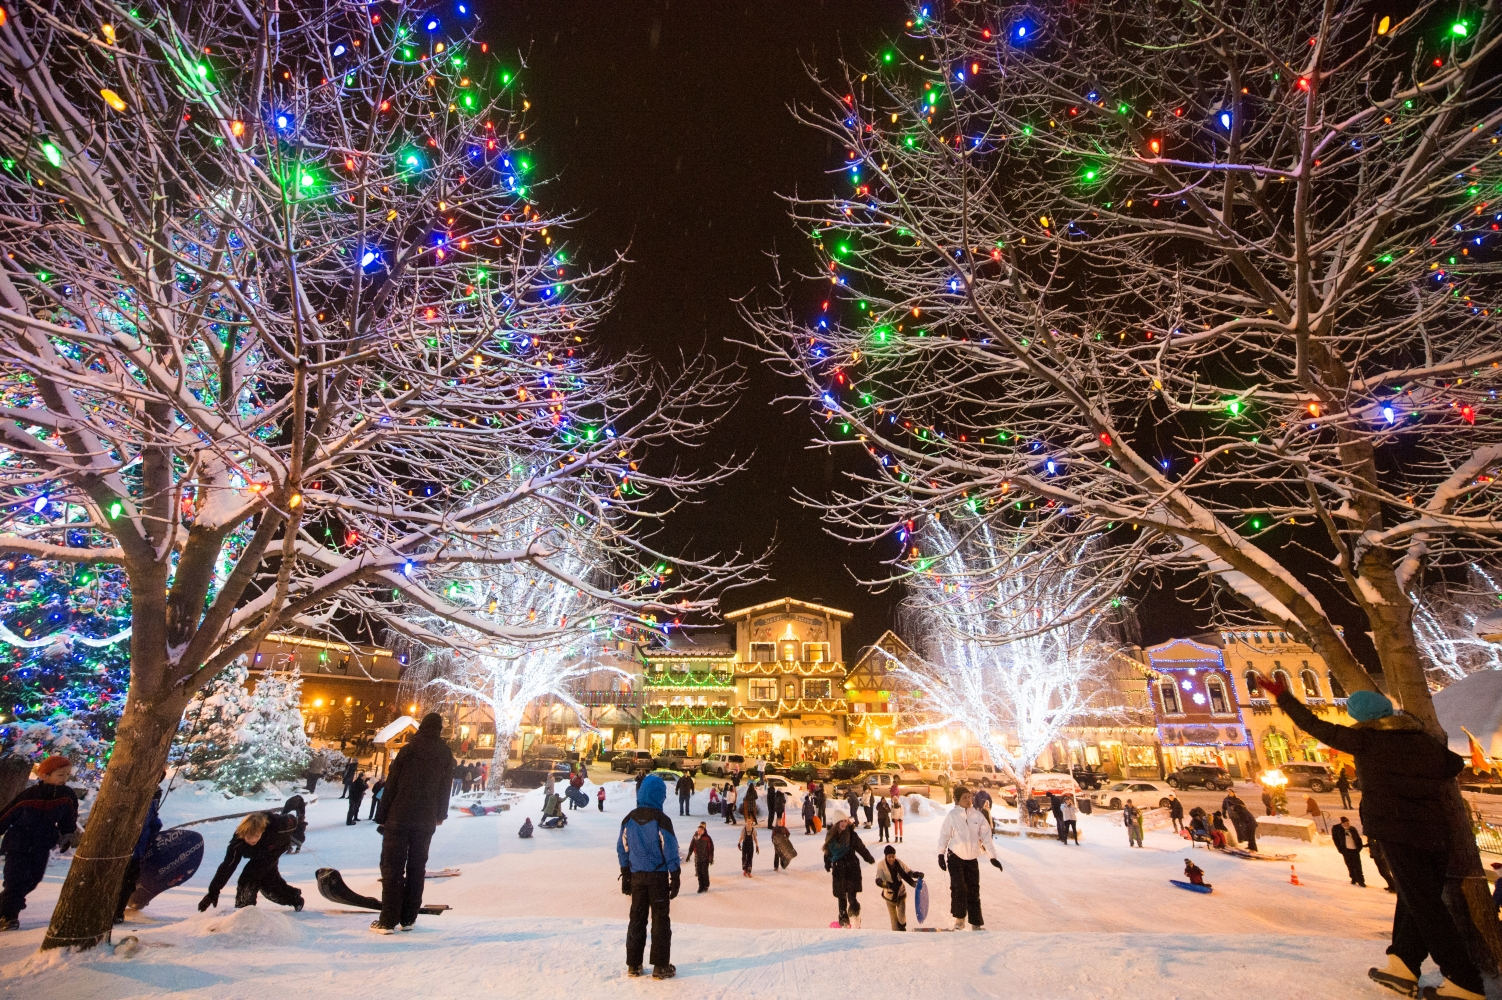 Leavenworth Christmas Lighting 2019 Leavenworth Christmas Lighting 2019 | CascadeLoop.com